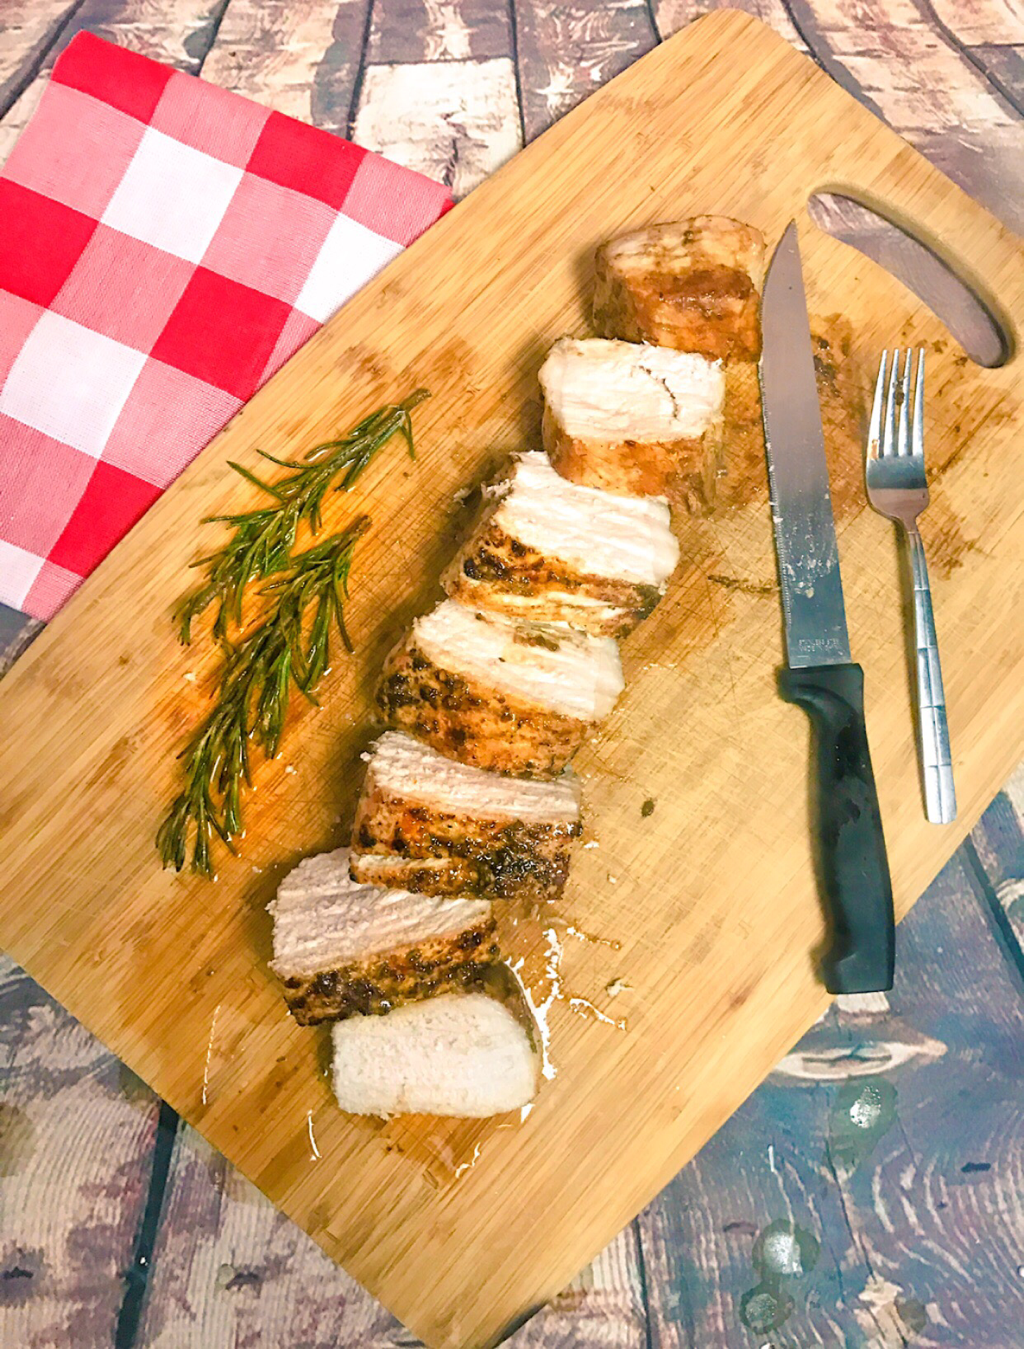 DINNER RECIPE IDEAS ~ BALSAMIC PORK TENDERLOIN #pmedia #seasonofpork #ad